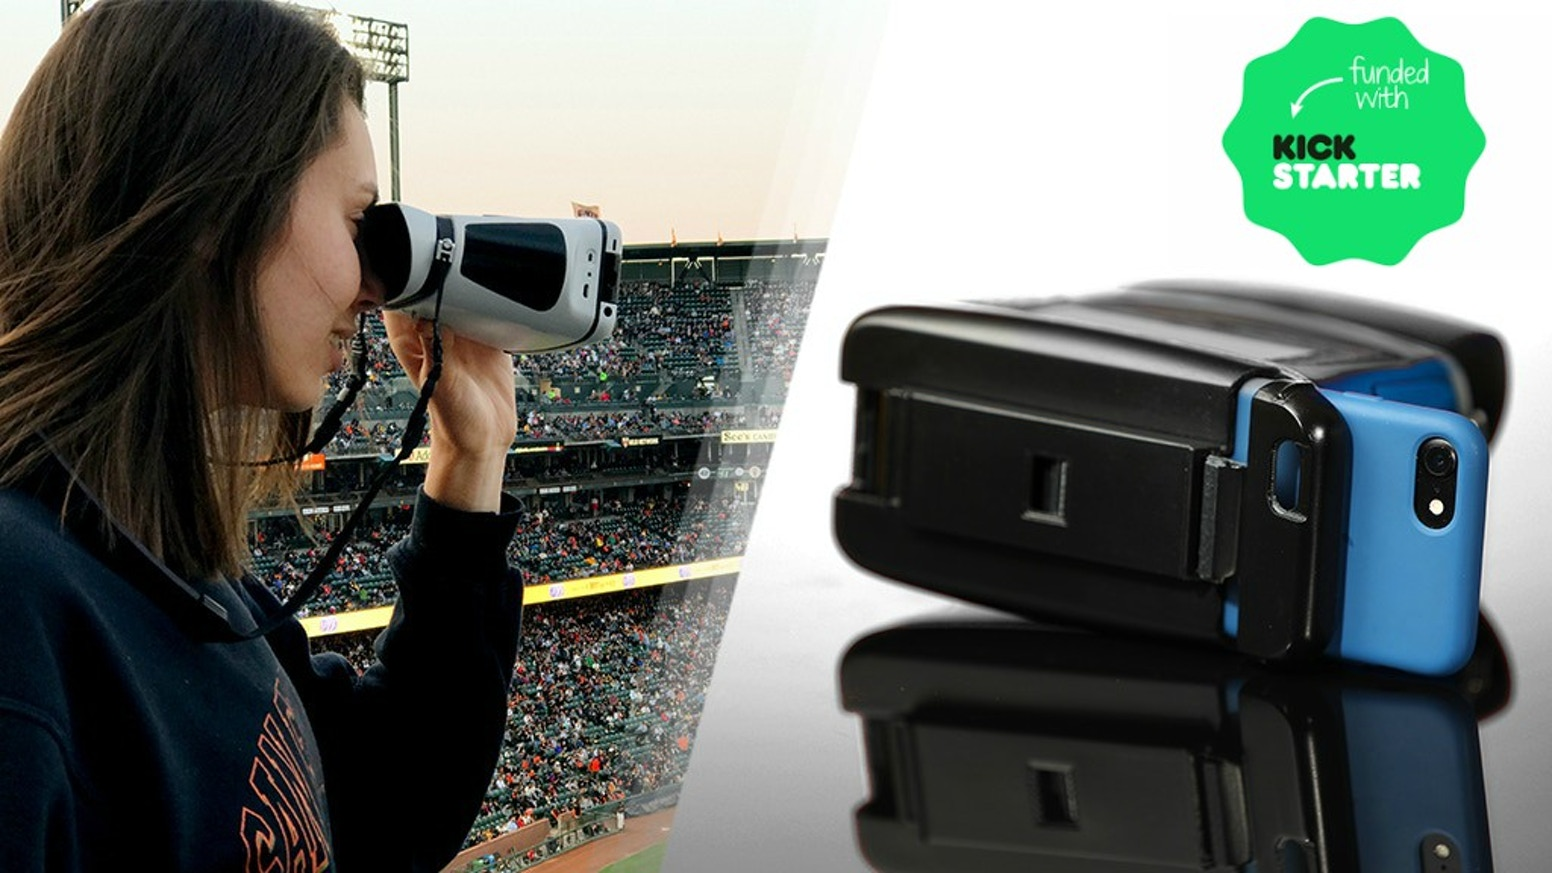 Turn your smartphone into an immersive binocular camera.  ZOOM - Capture - Live Stream - Be-in-the-Moment!